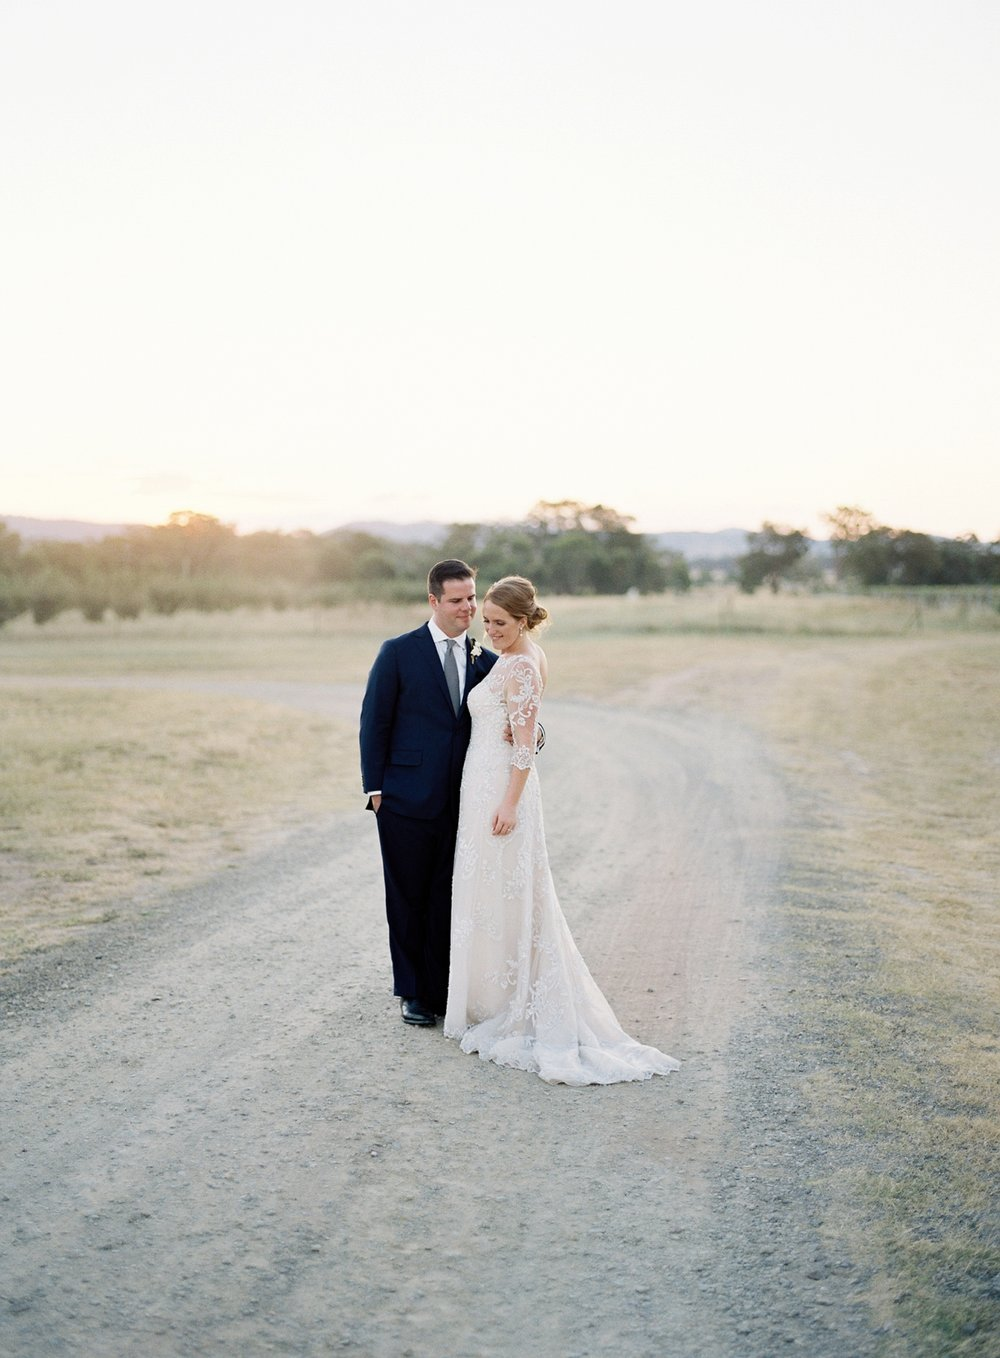 The Vine Grove Mudgee Wedding, Photography by Mr Edwards_1822.jpg